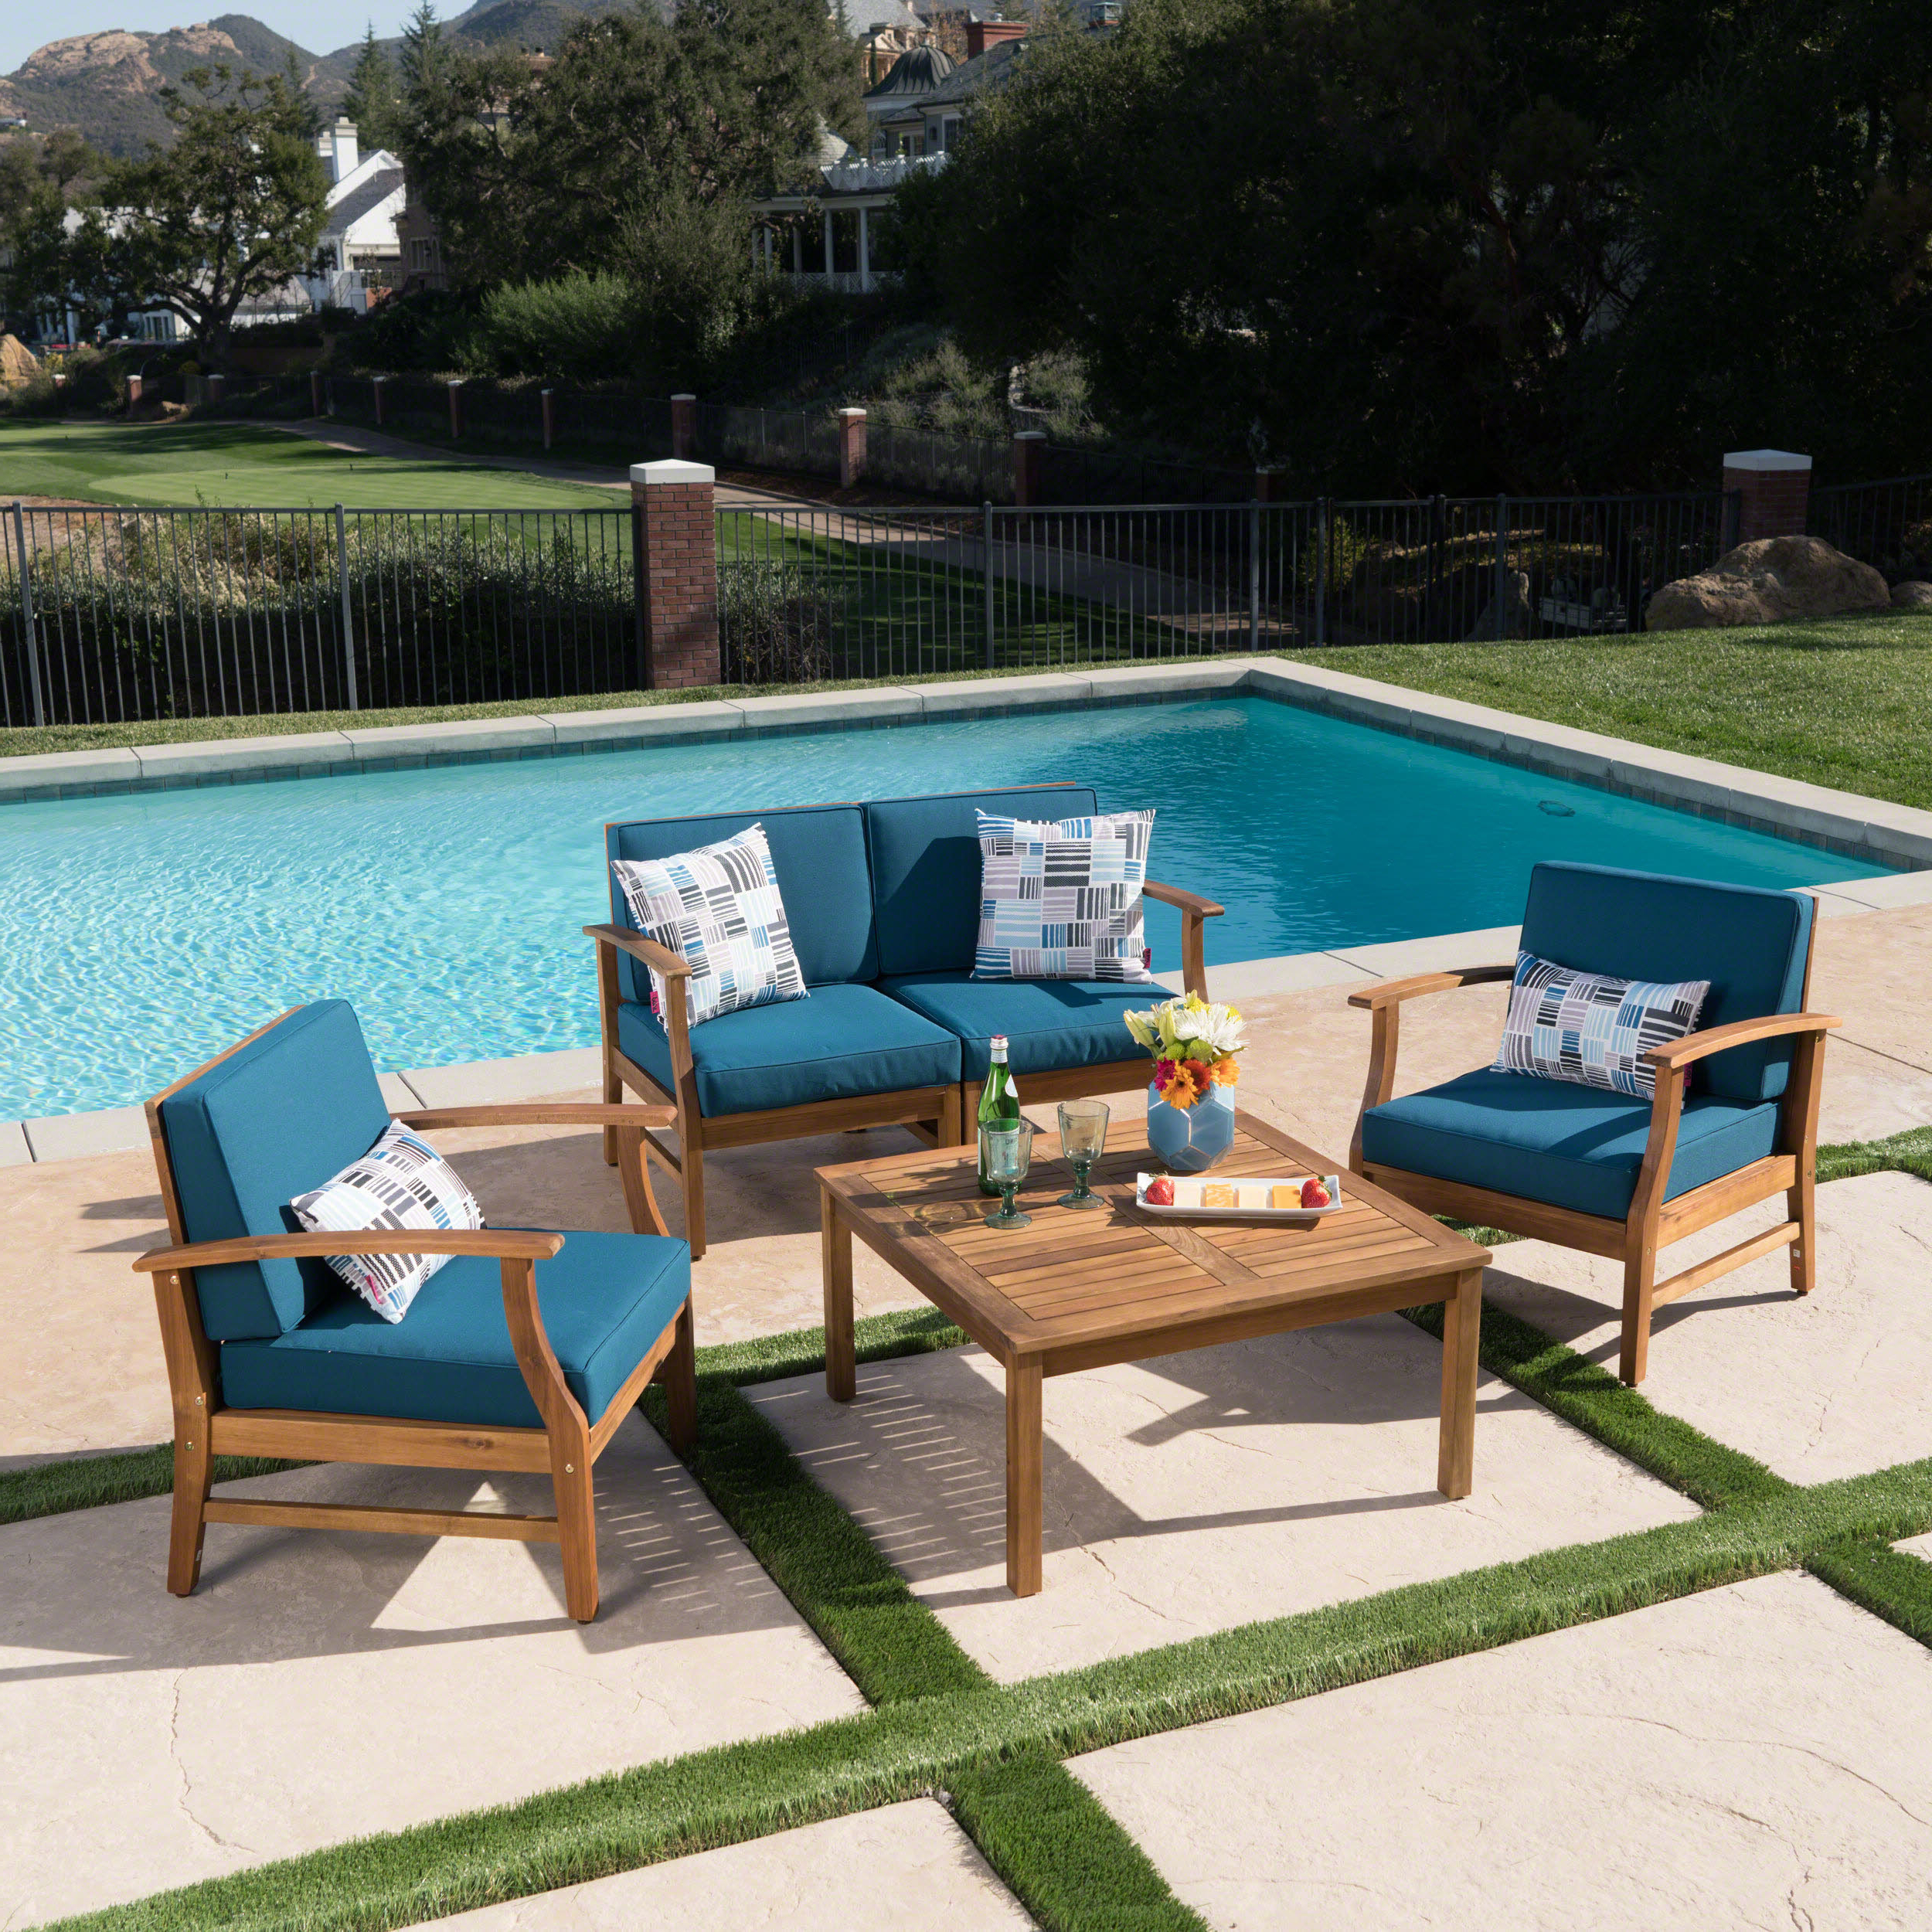 Famous Antonia Teak Patio Sectionals With Cushions With Regard To Antonia 4 Piece Sofa Set With Cushions (View 13 of 25)